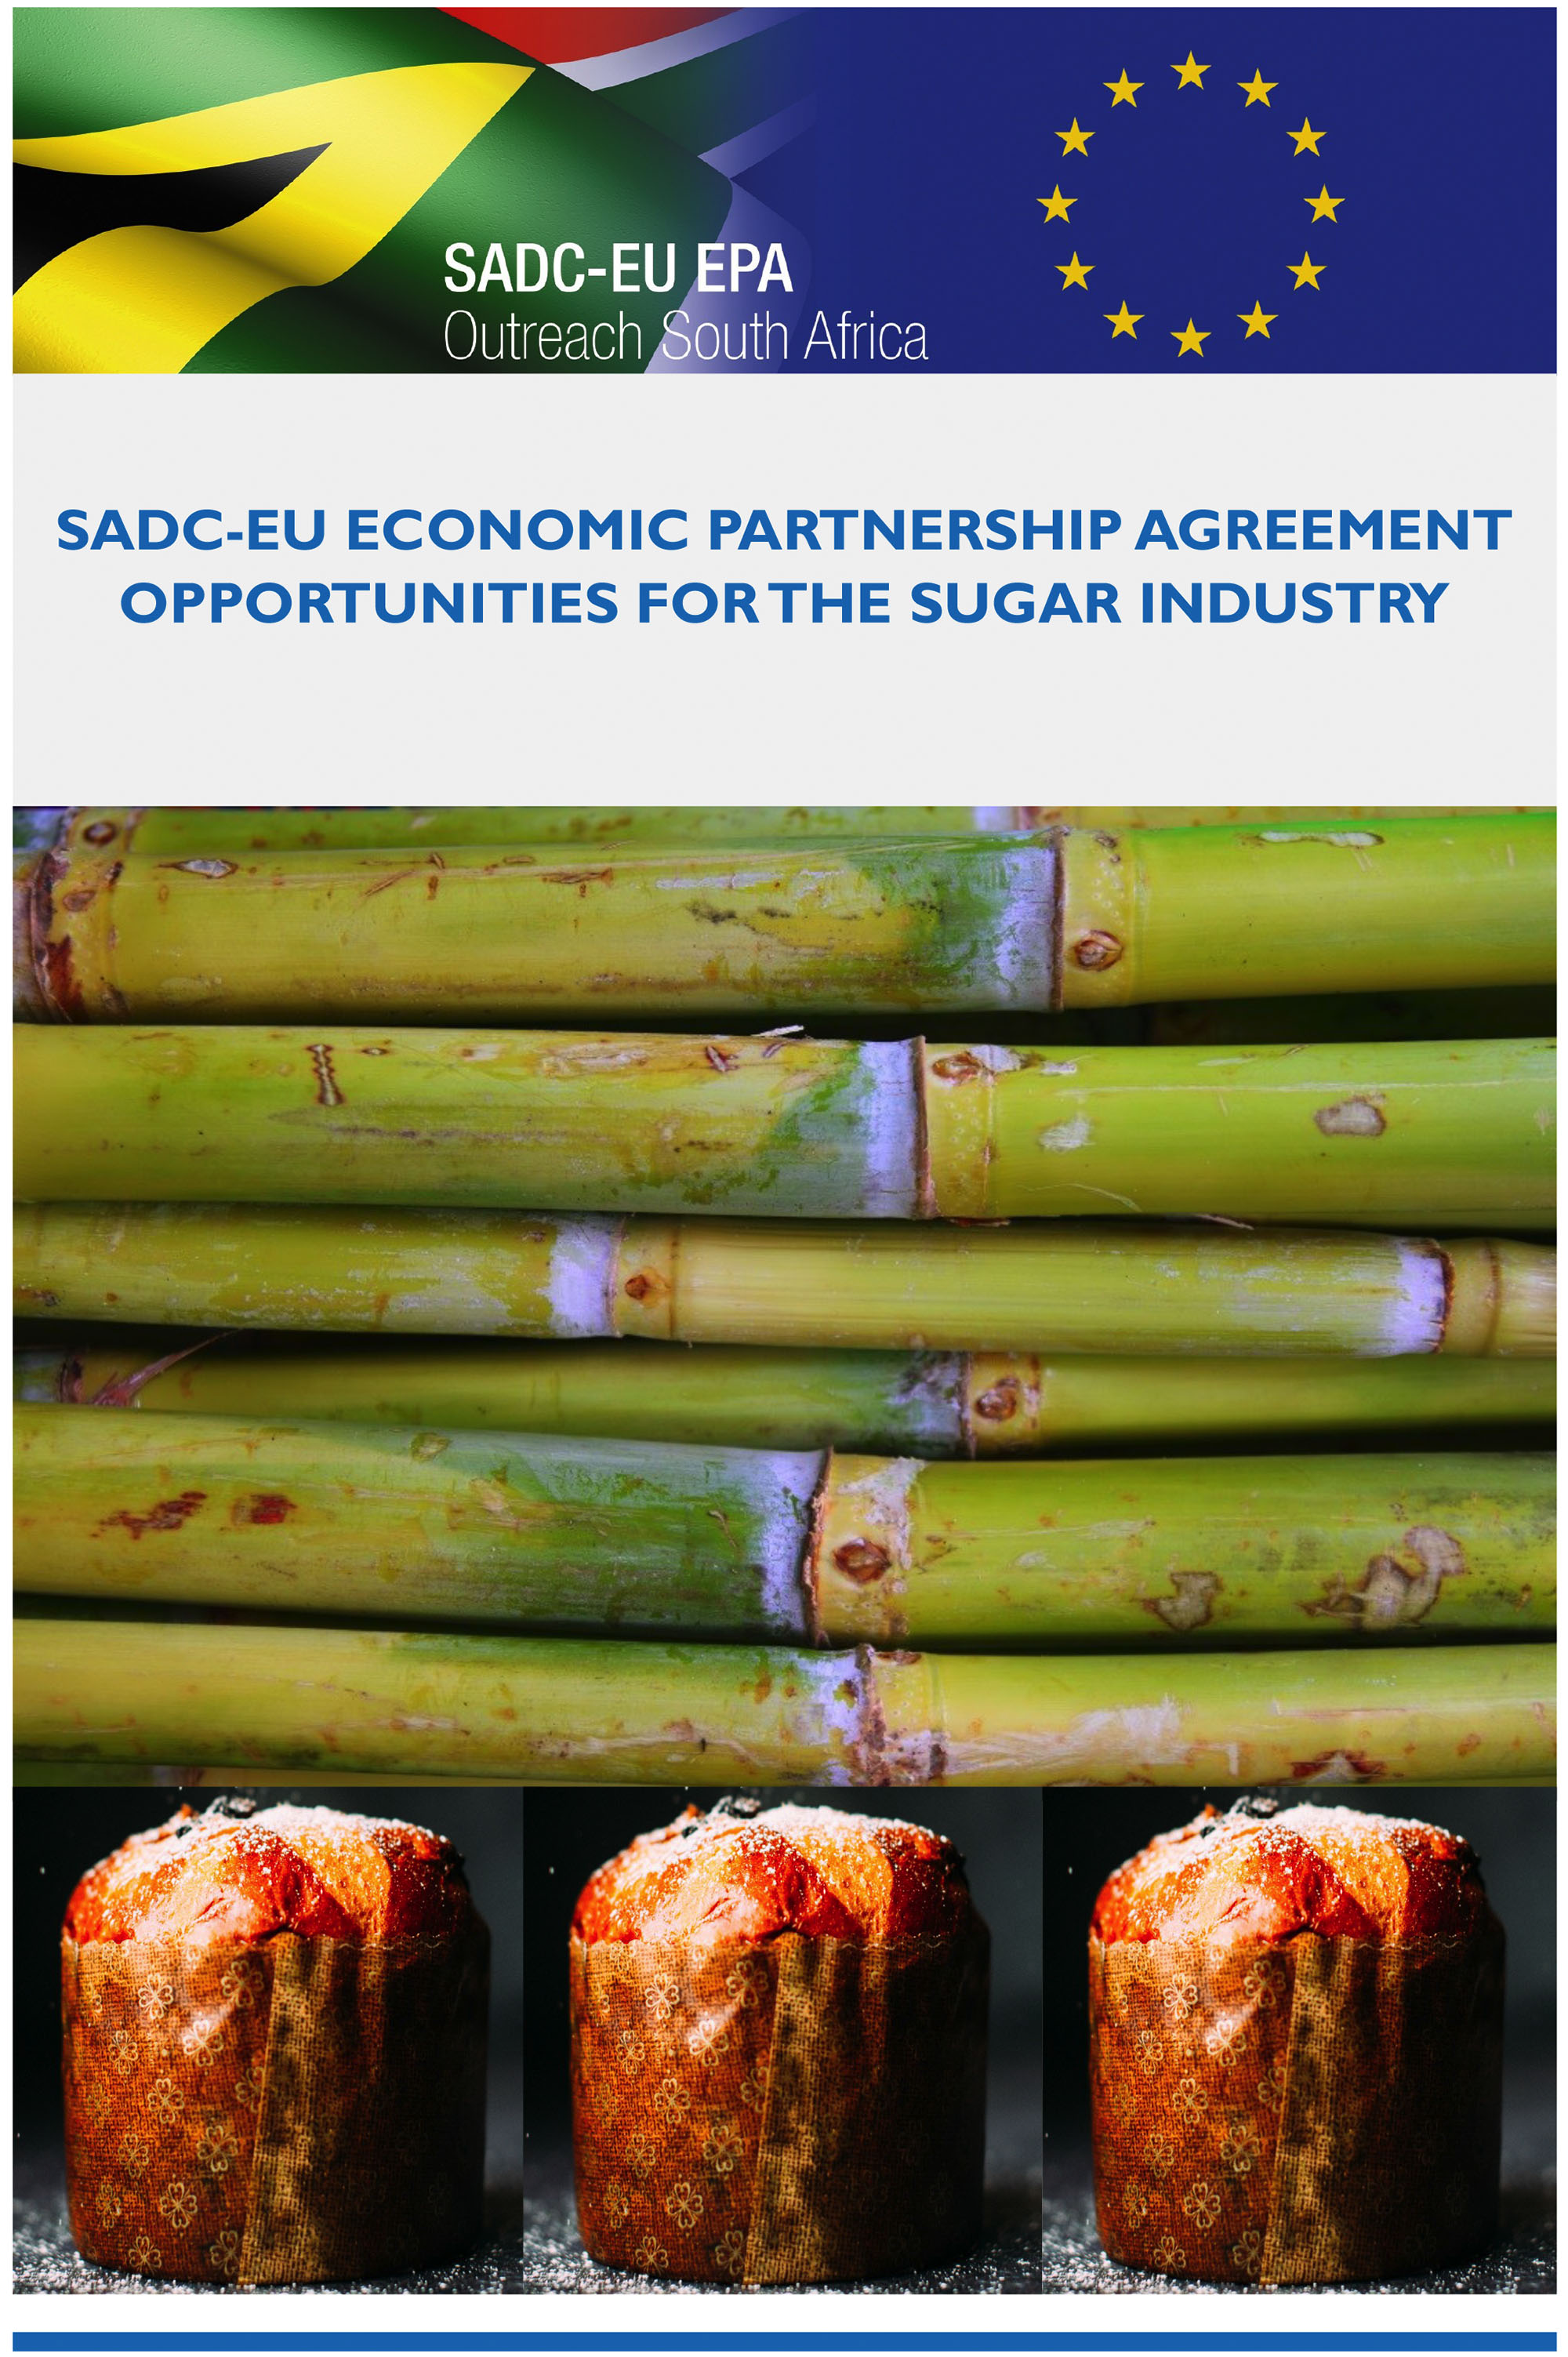 SACD-EU EPA opportunities for the Sugar Industry